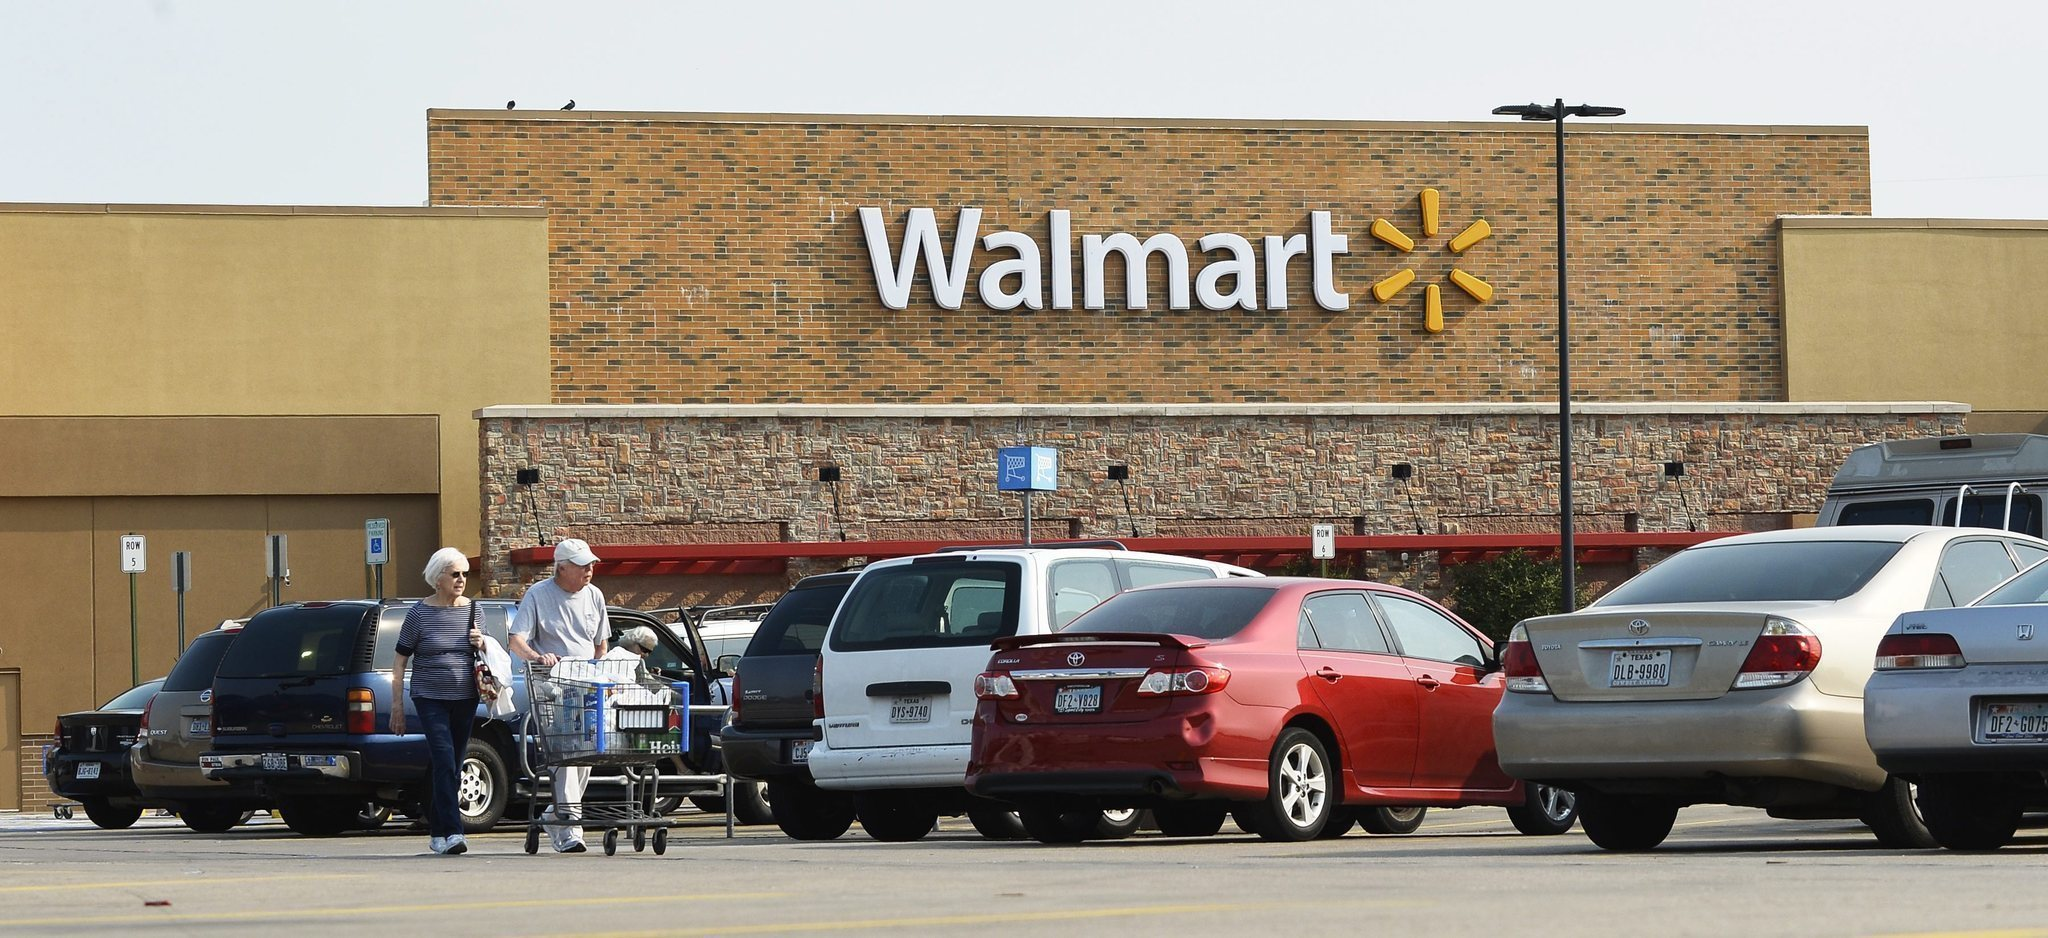 retail marketing mix of wal mart These funds are invested in walmart marketing communication mix that include   the retailer launches seasonal sales promotions in a regular.